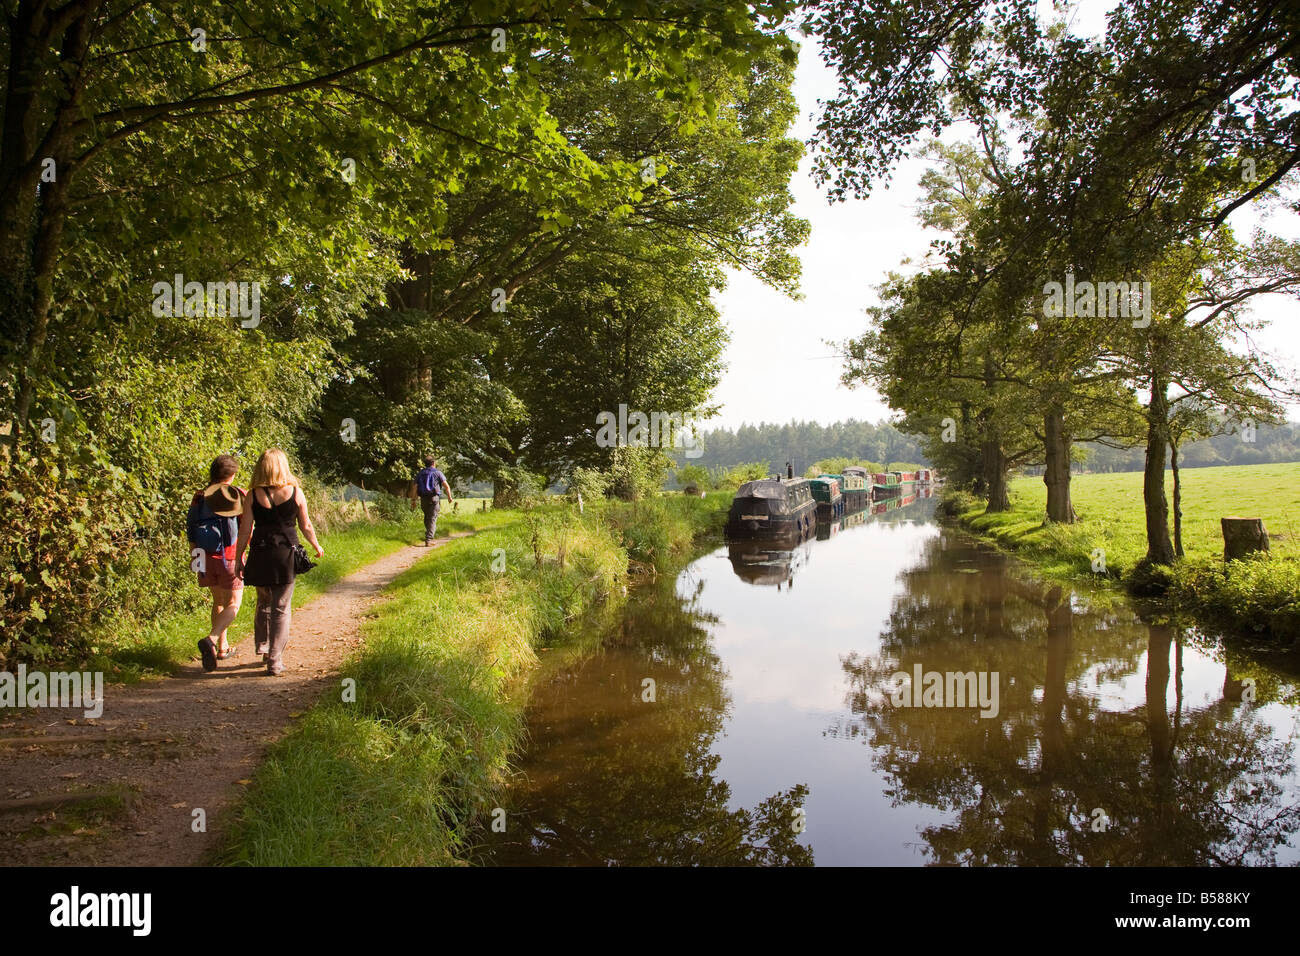 People walking on canal towpath Brecon and Monmouthshire canal Wales UK - Stock Image